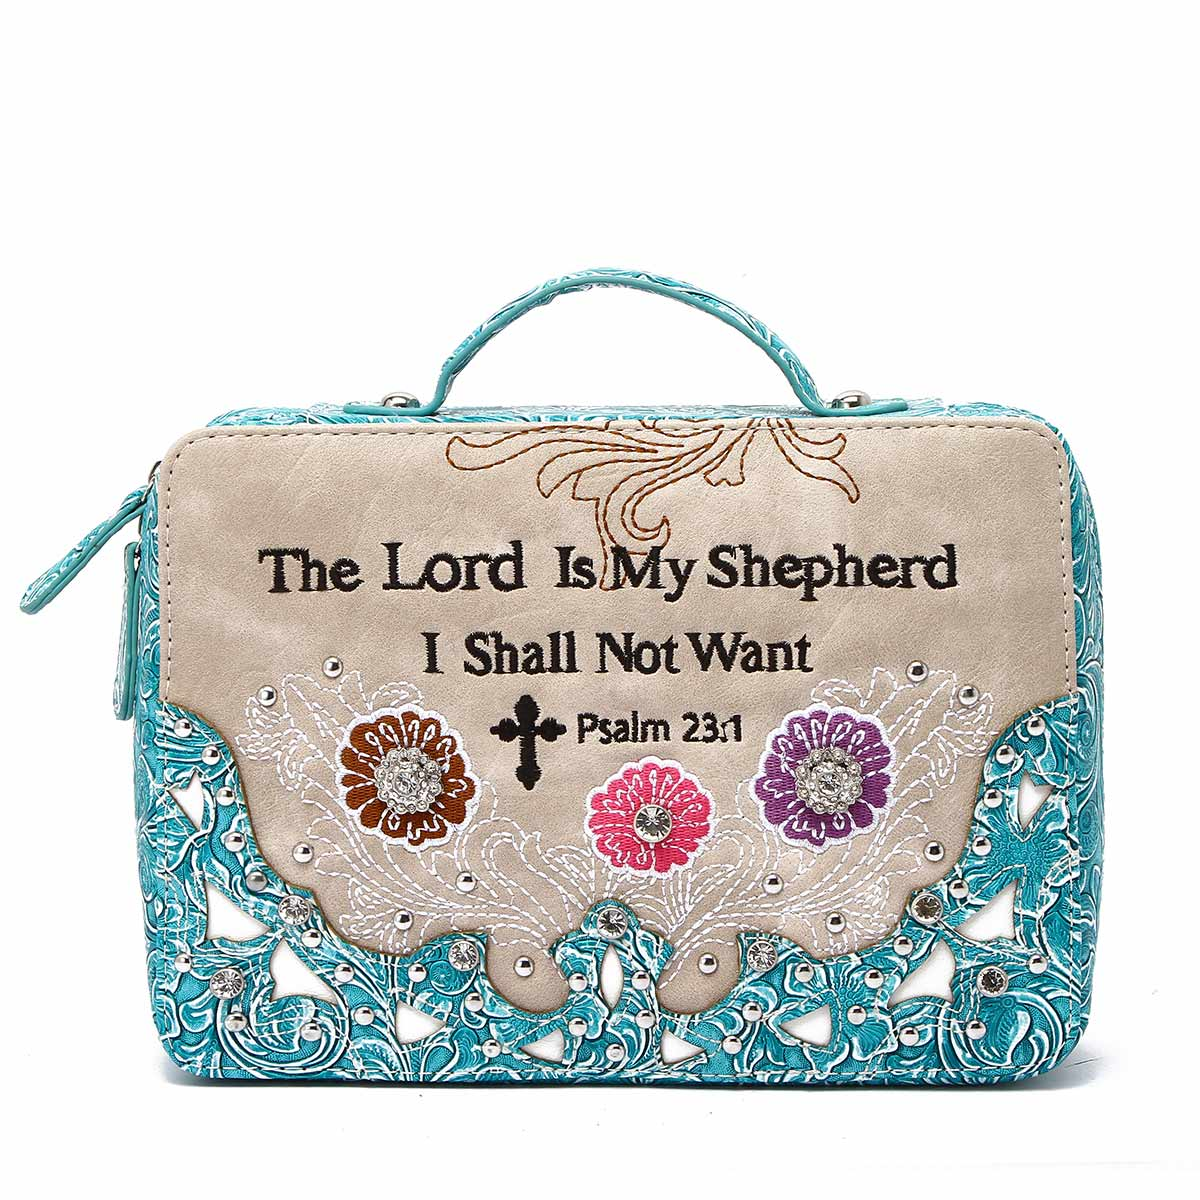 Western Cowgirl Bible Verse Bible Cover Turquoise